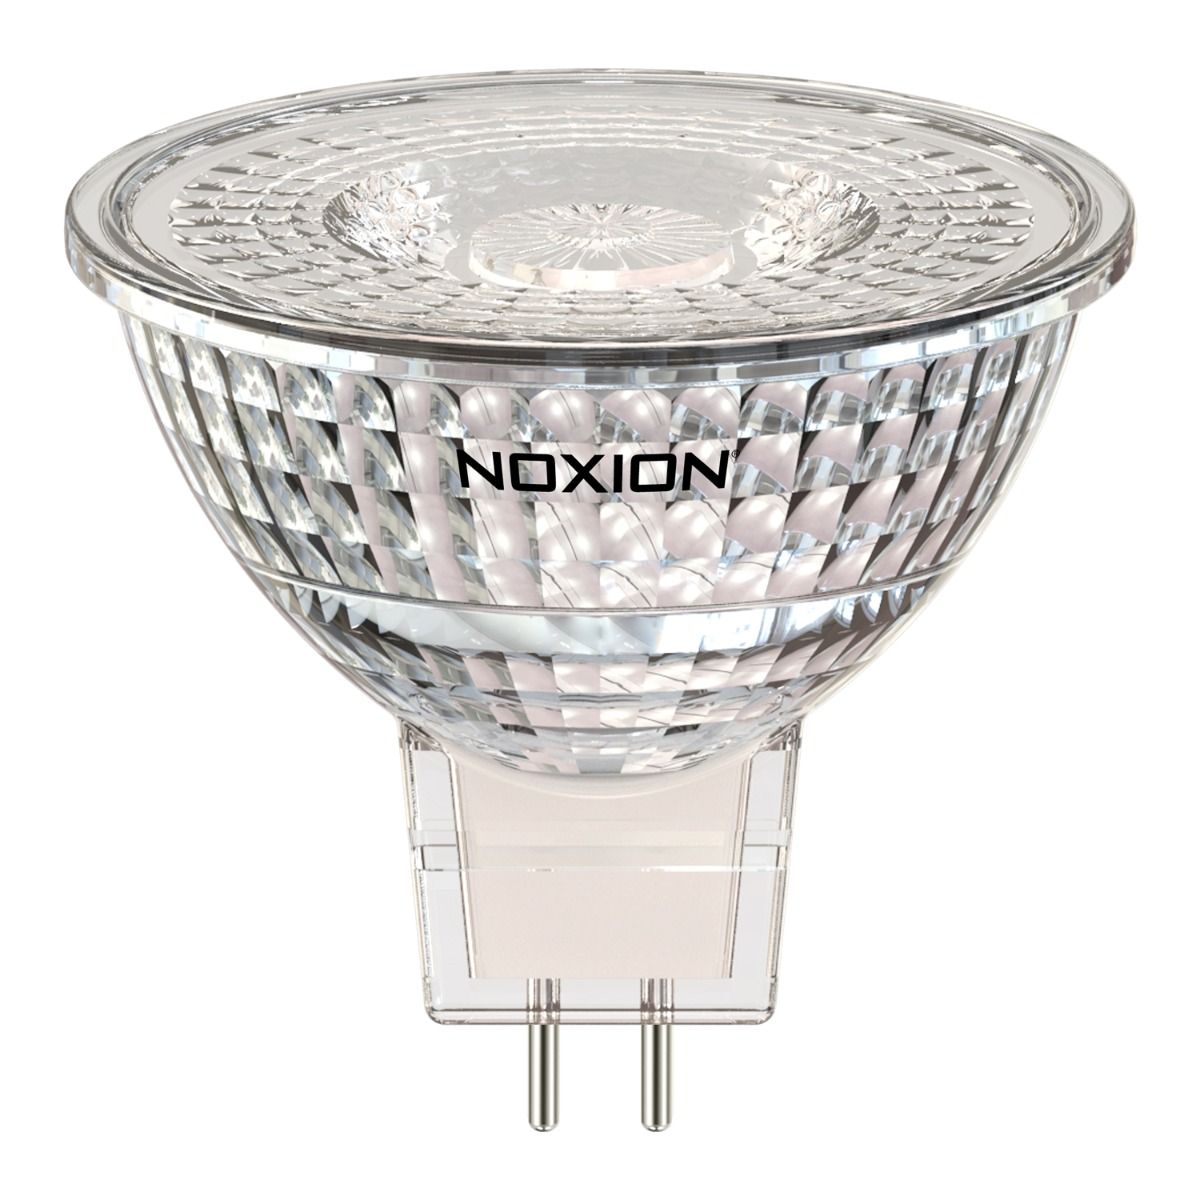 Noxion LED Spot GU5.3 5W 840 36D 490lm | Dimmable - Cool White - Replaces 35W